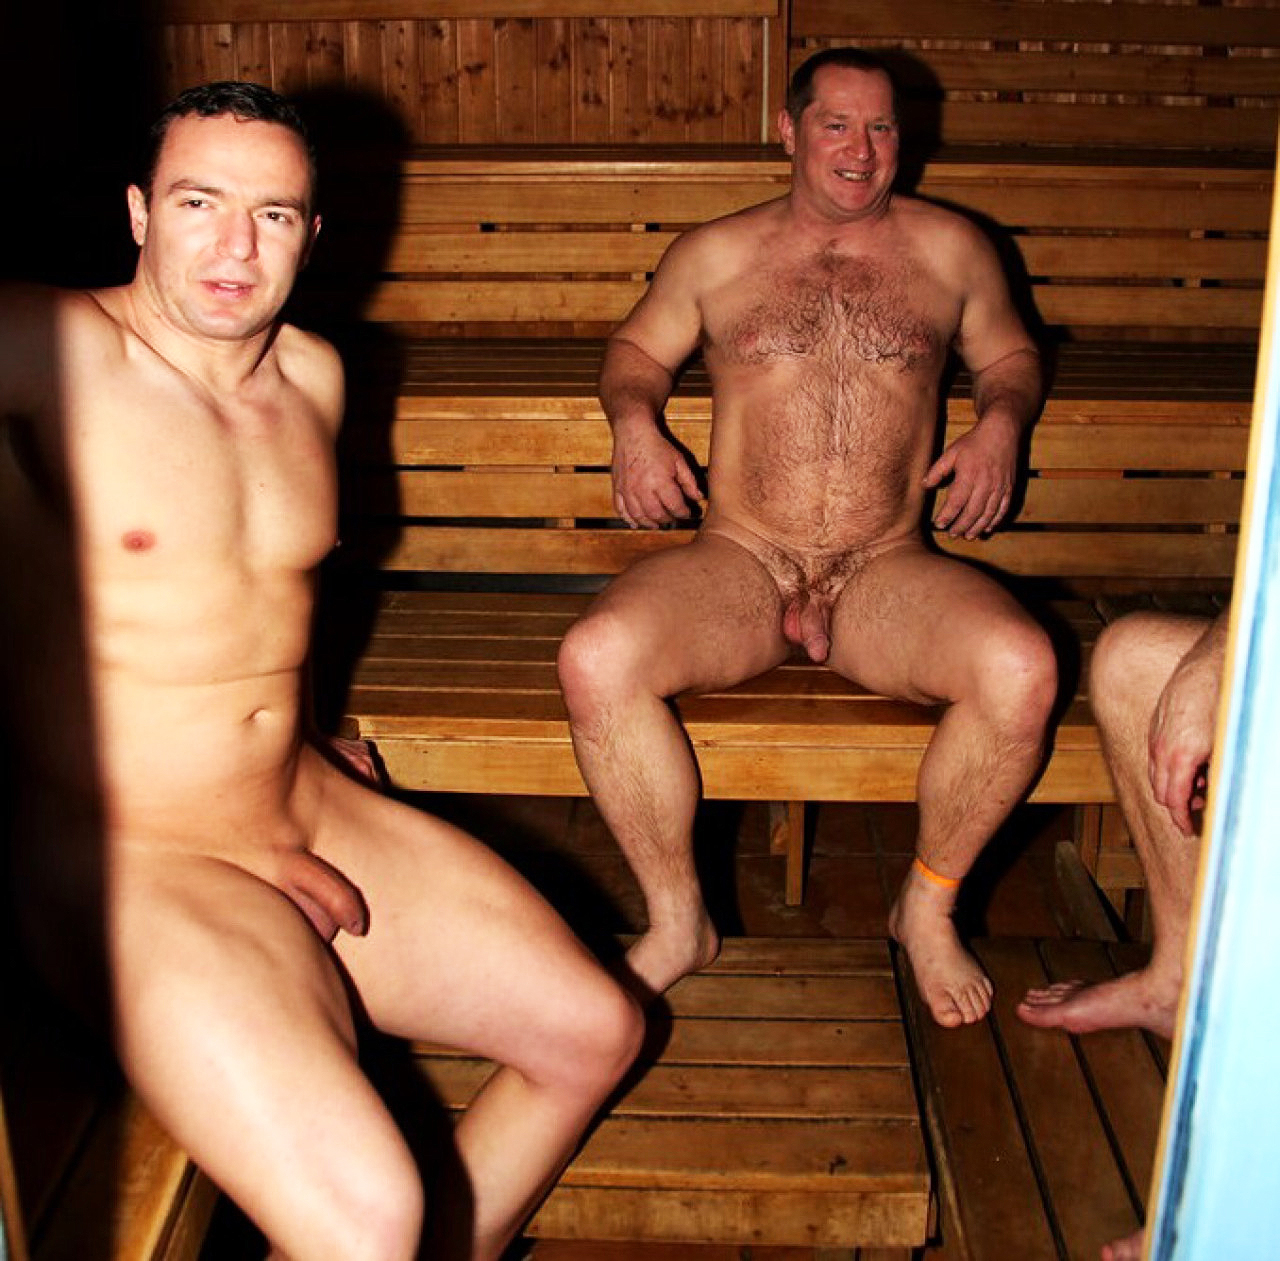 Something is. Men in saunas nude good when